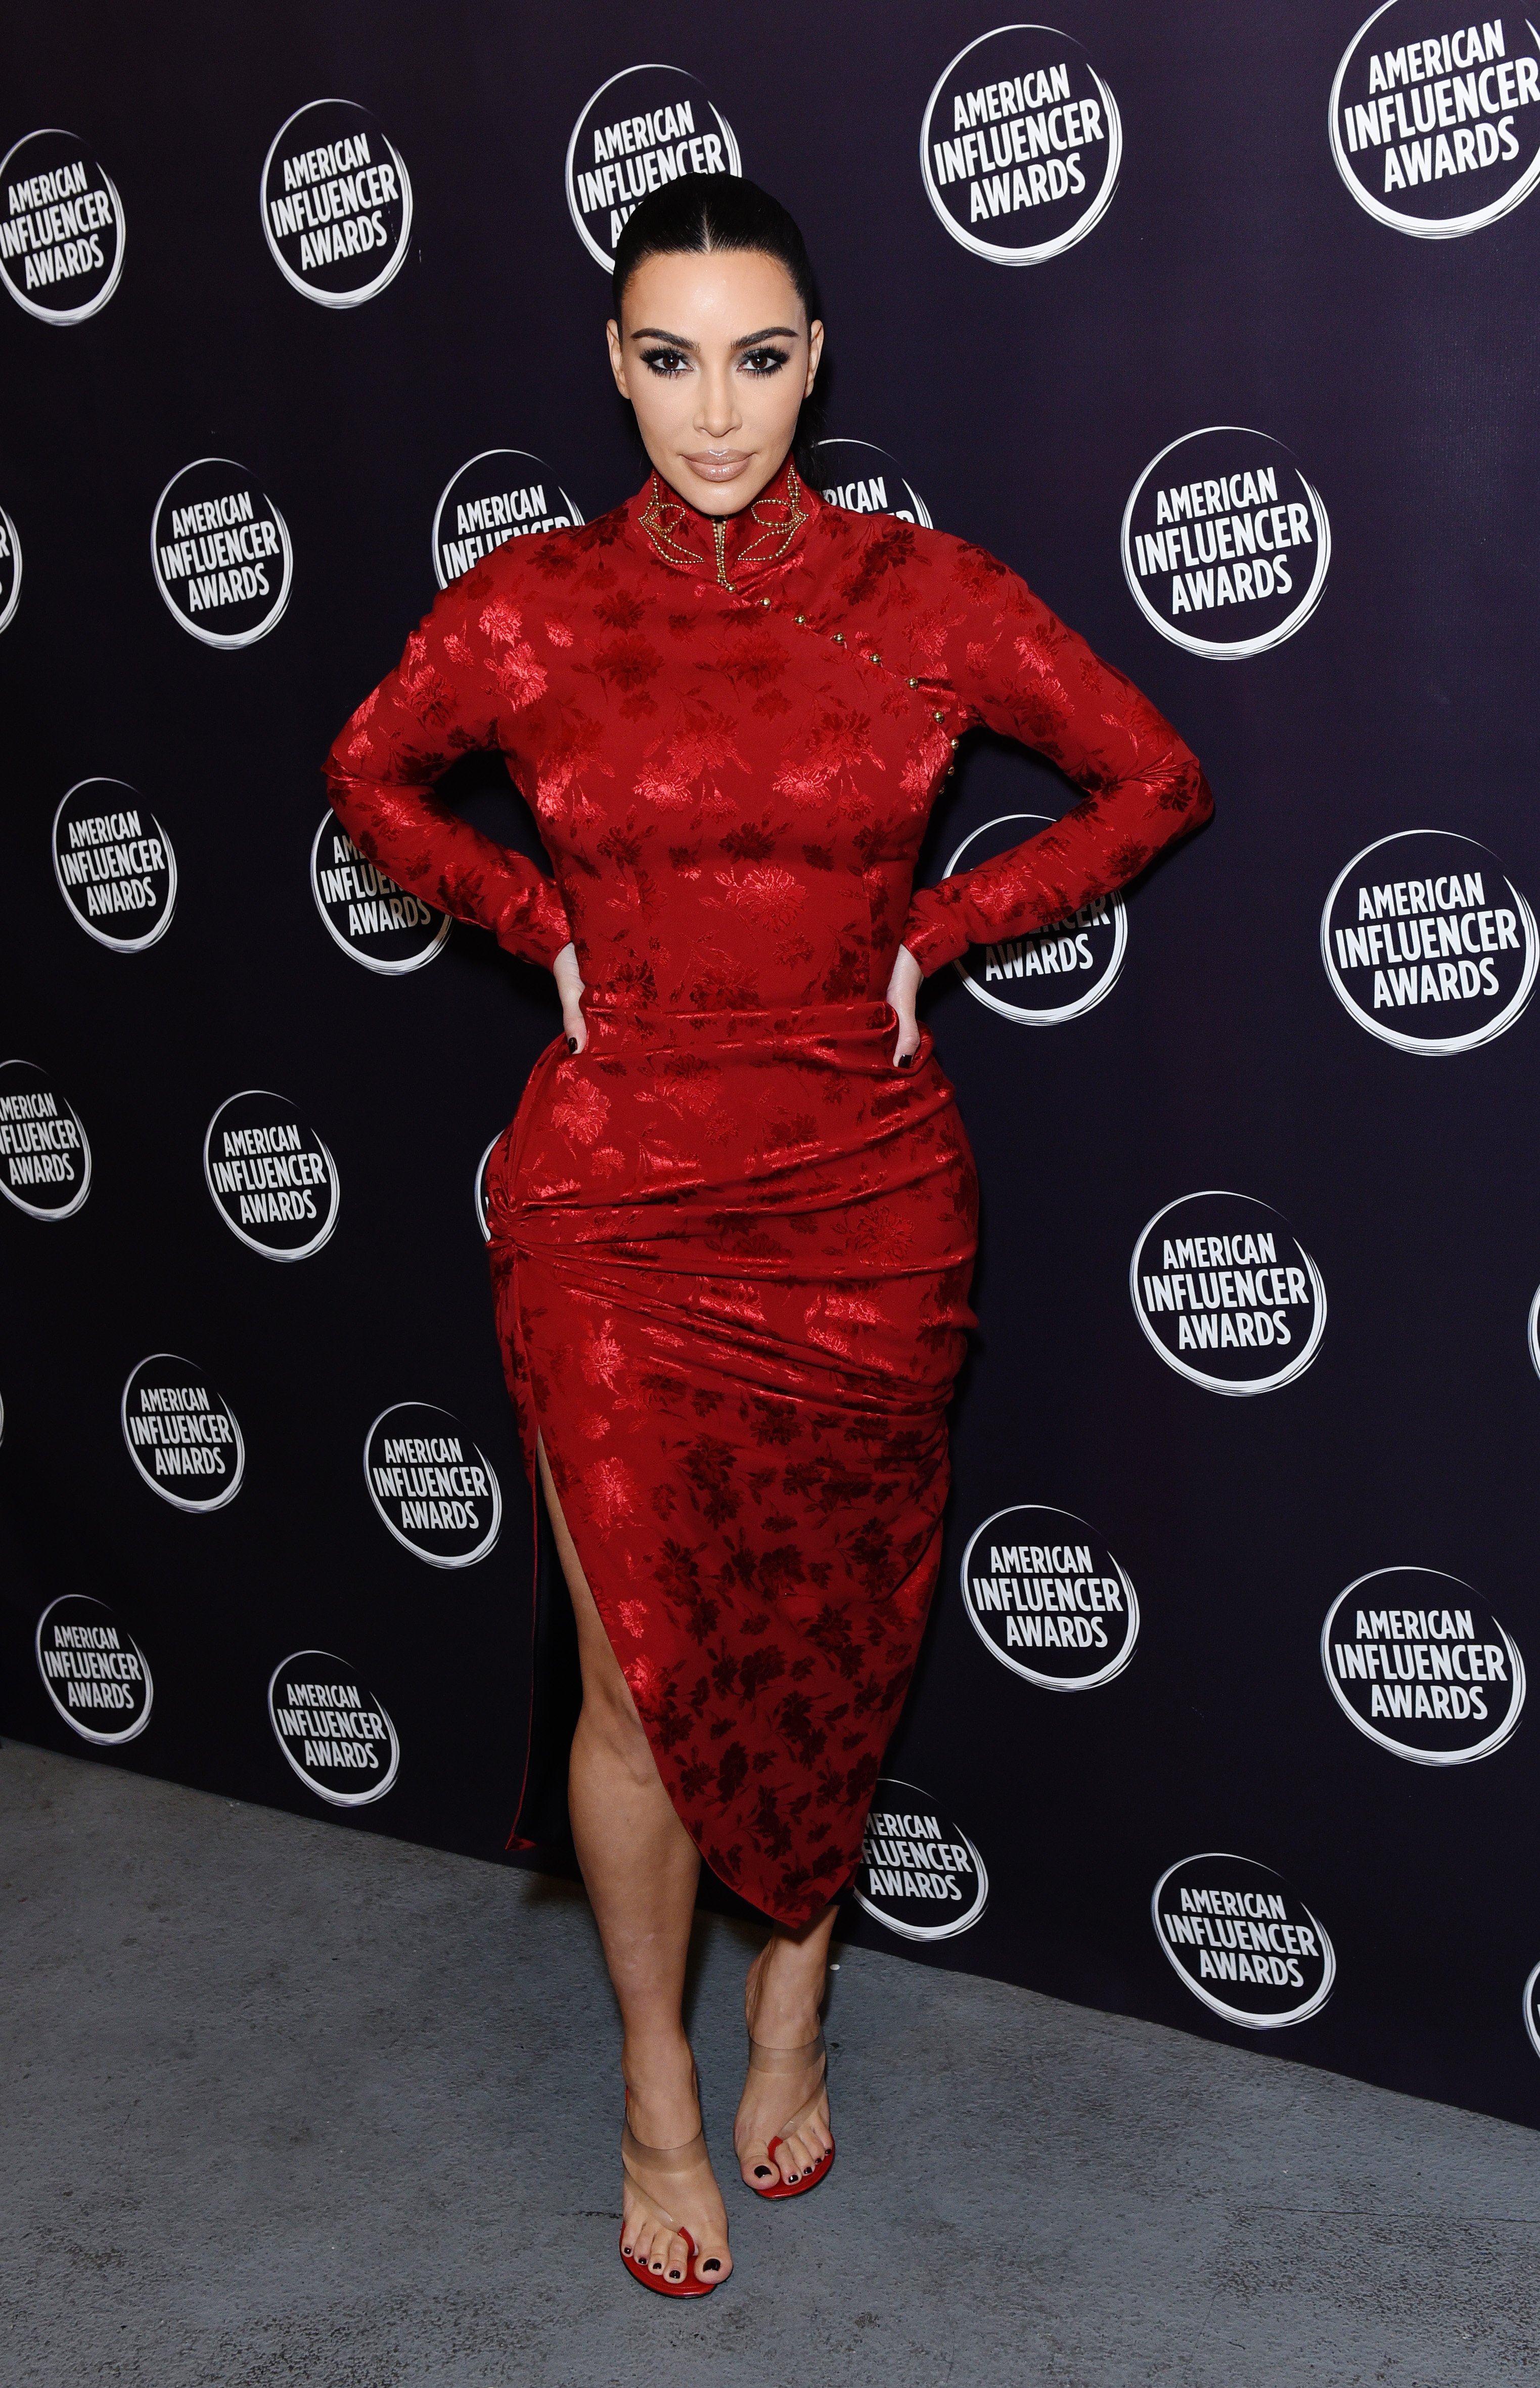 Kim Kardashian attends the American Influencer Awards in Hollywood, California on November 18, 2019 | Photo: Getty Images